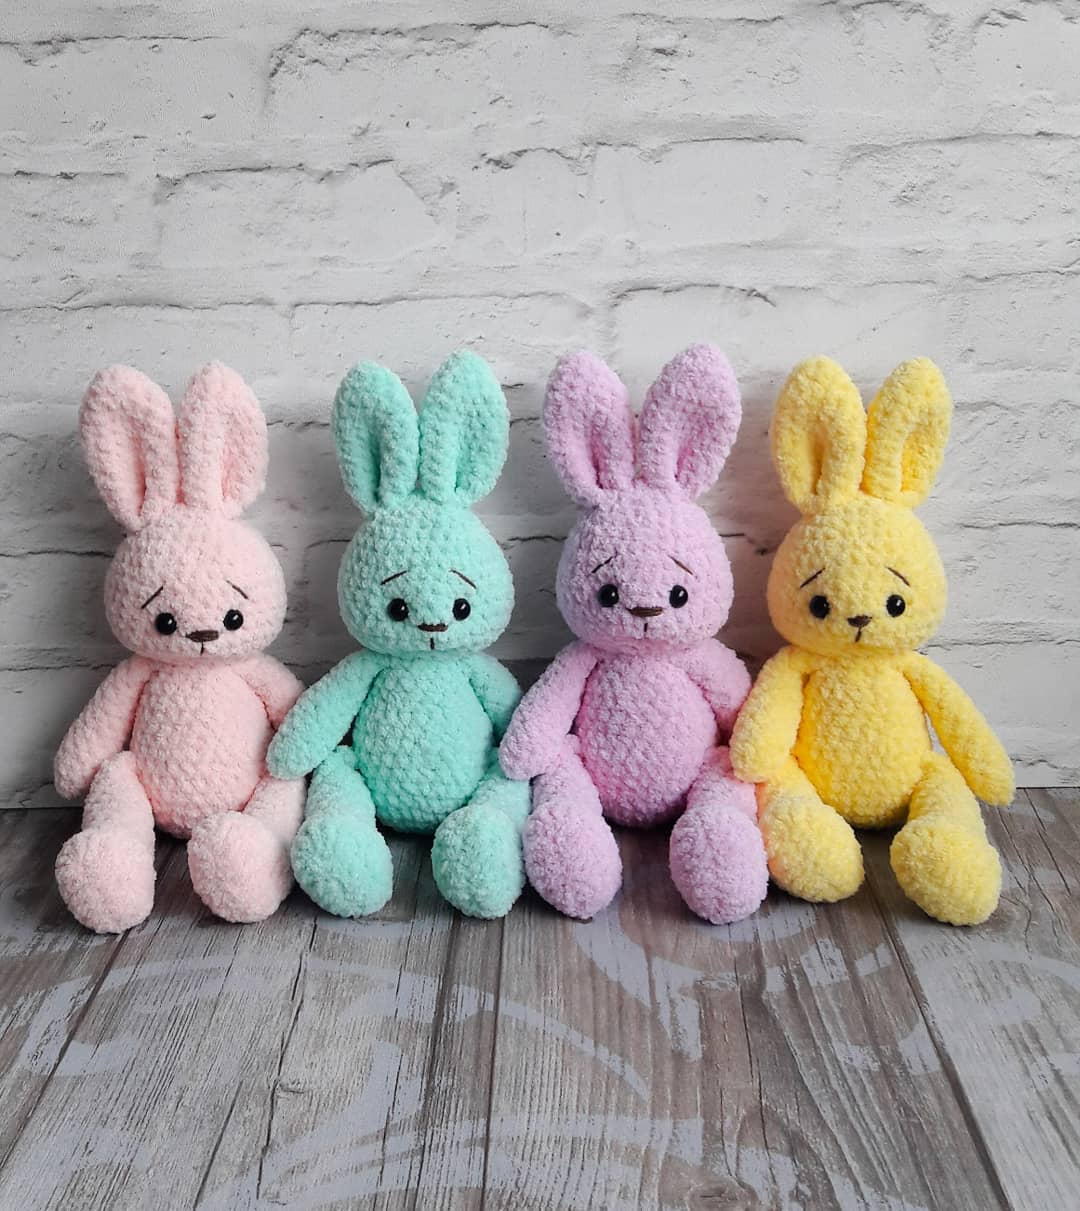 Bunny amigurumi crochet plush toy